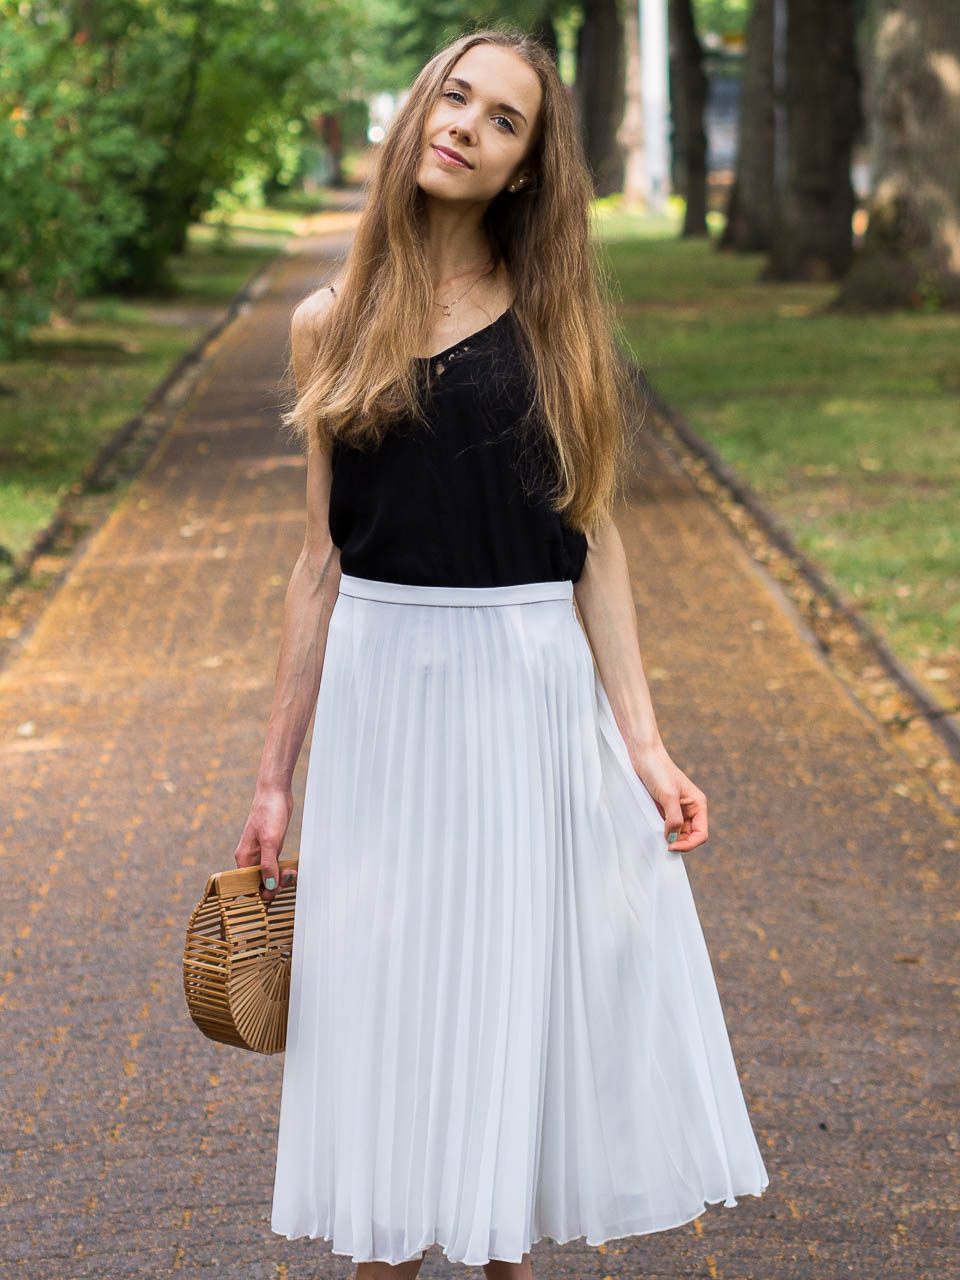 summer-fashion-inspiration-blogger-style